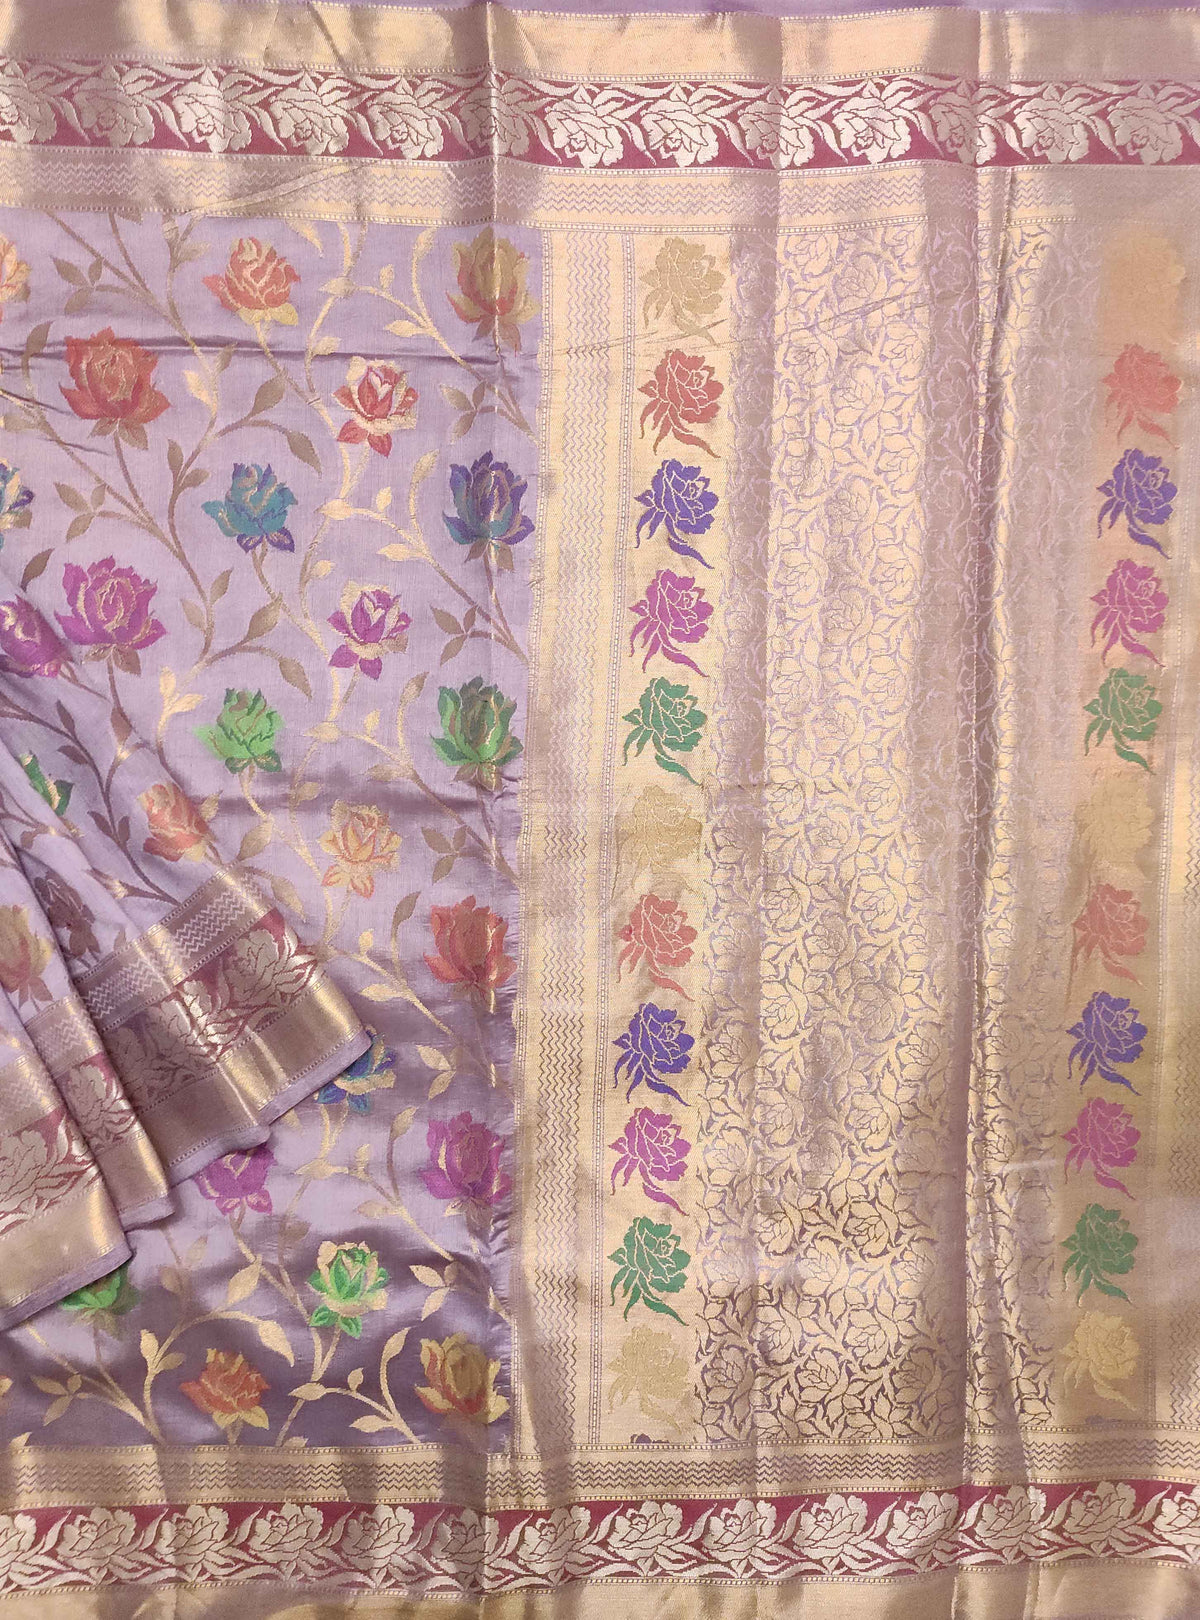 Lavender Muga chiniya silk Banarasi saree with meenedar rose flower jaal (1) Main